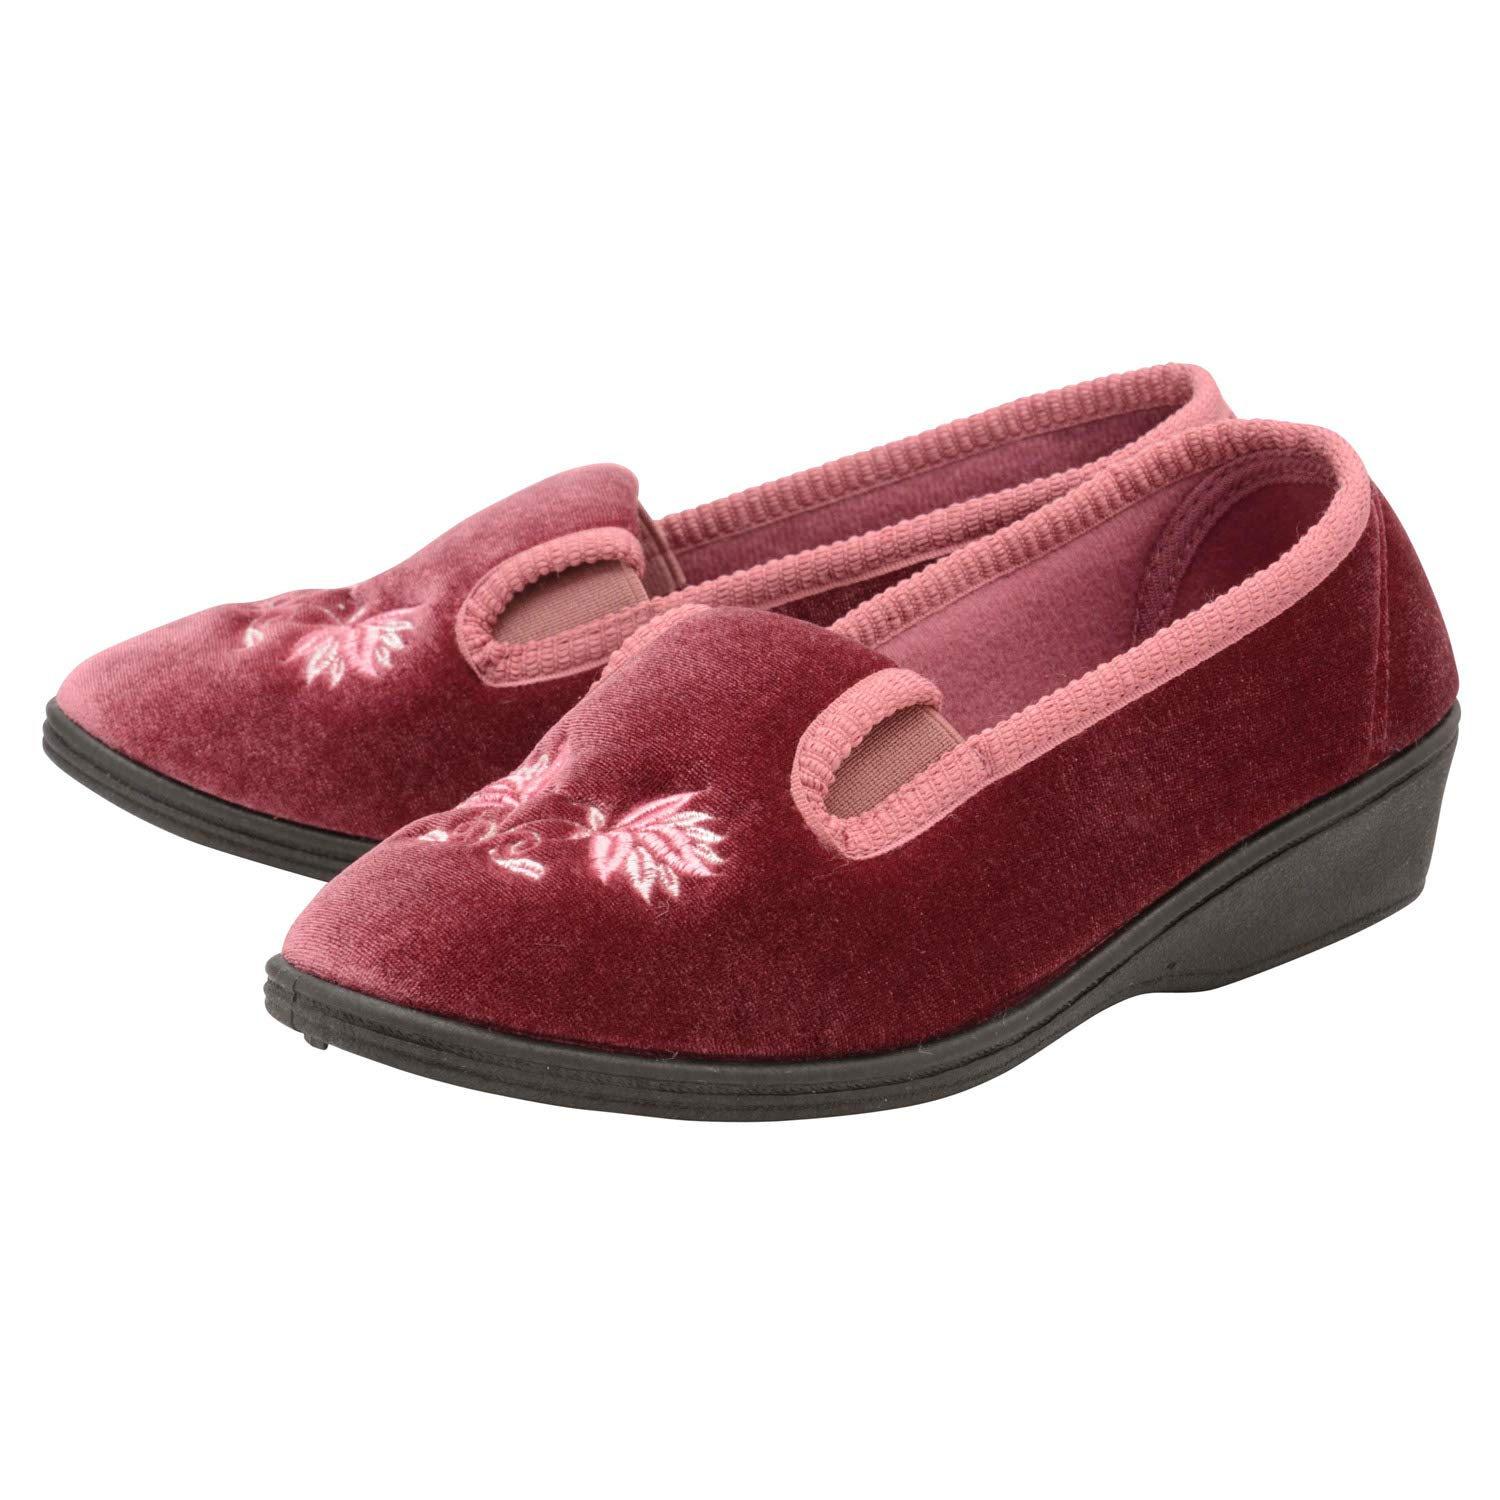 6c37b8a3873f Dunlop Womens Low Wedge Heel Floral Embroidered Velour Slippers   Amazon.co.uk  Shoes   Bags